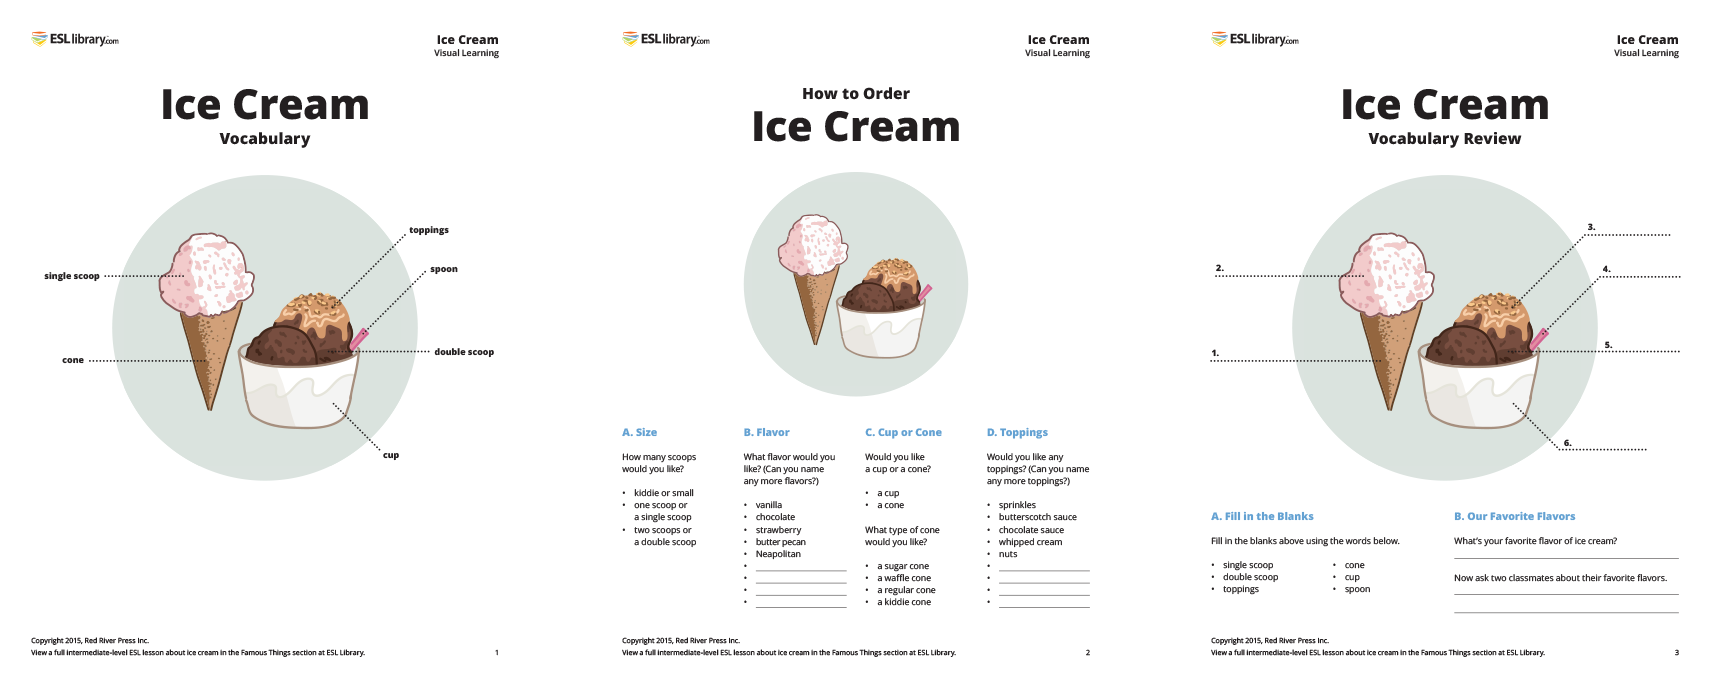 VL_Ice-Cream_US